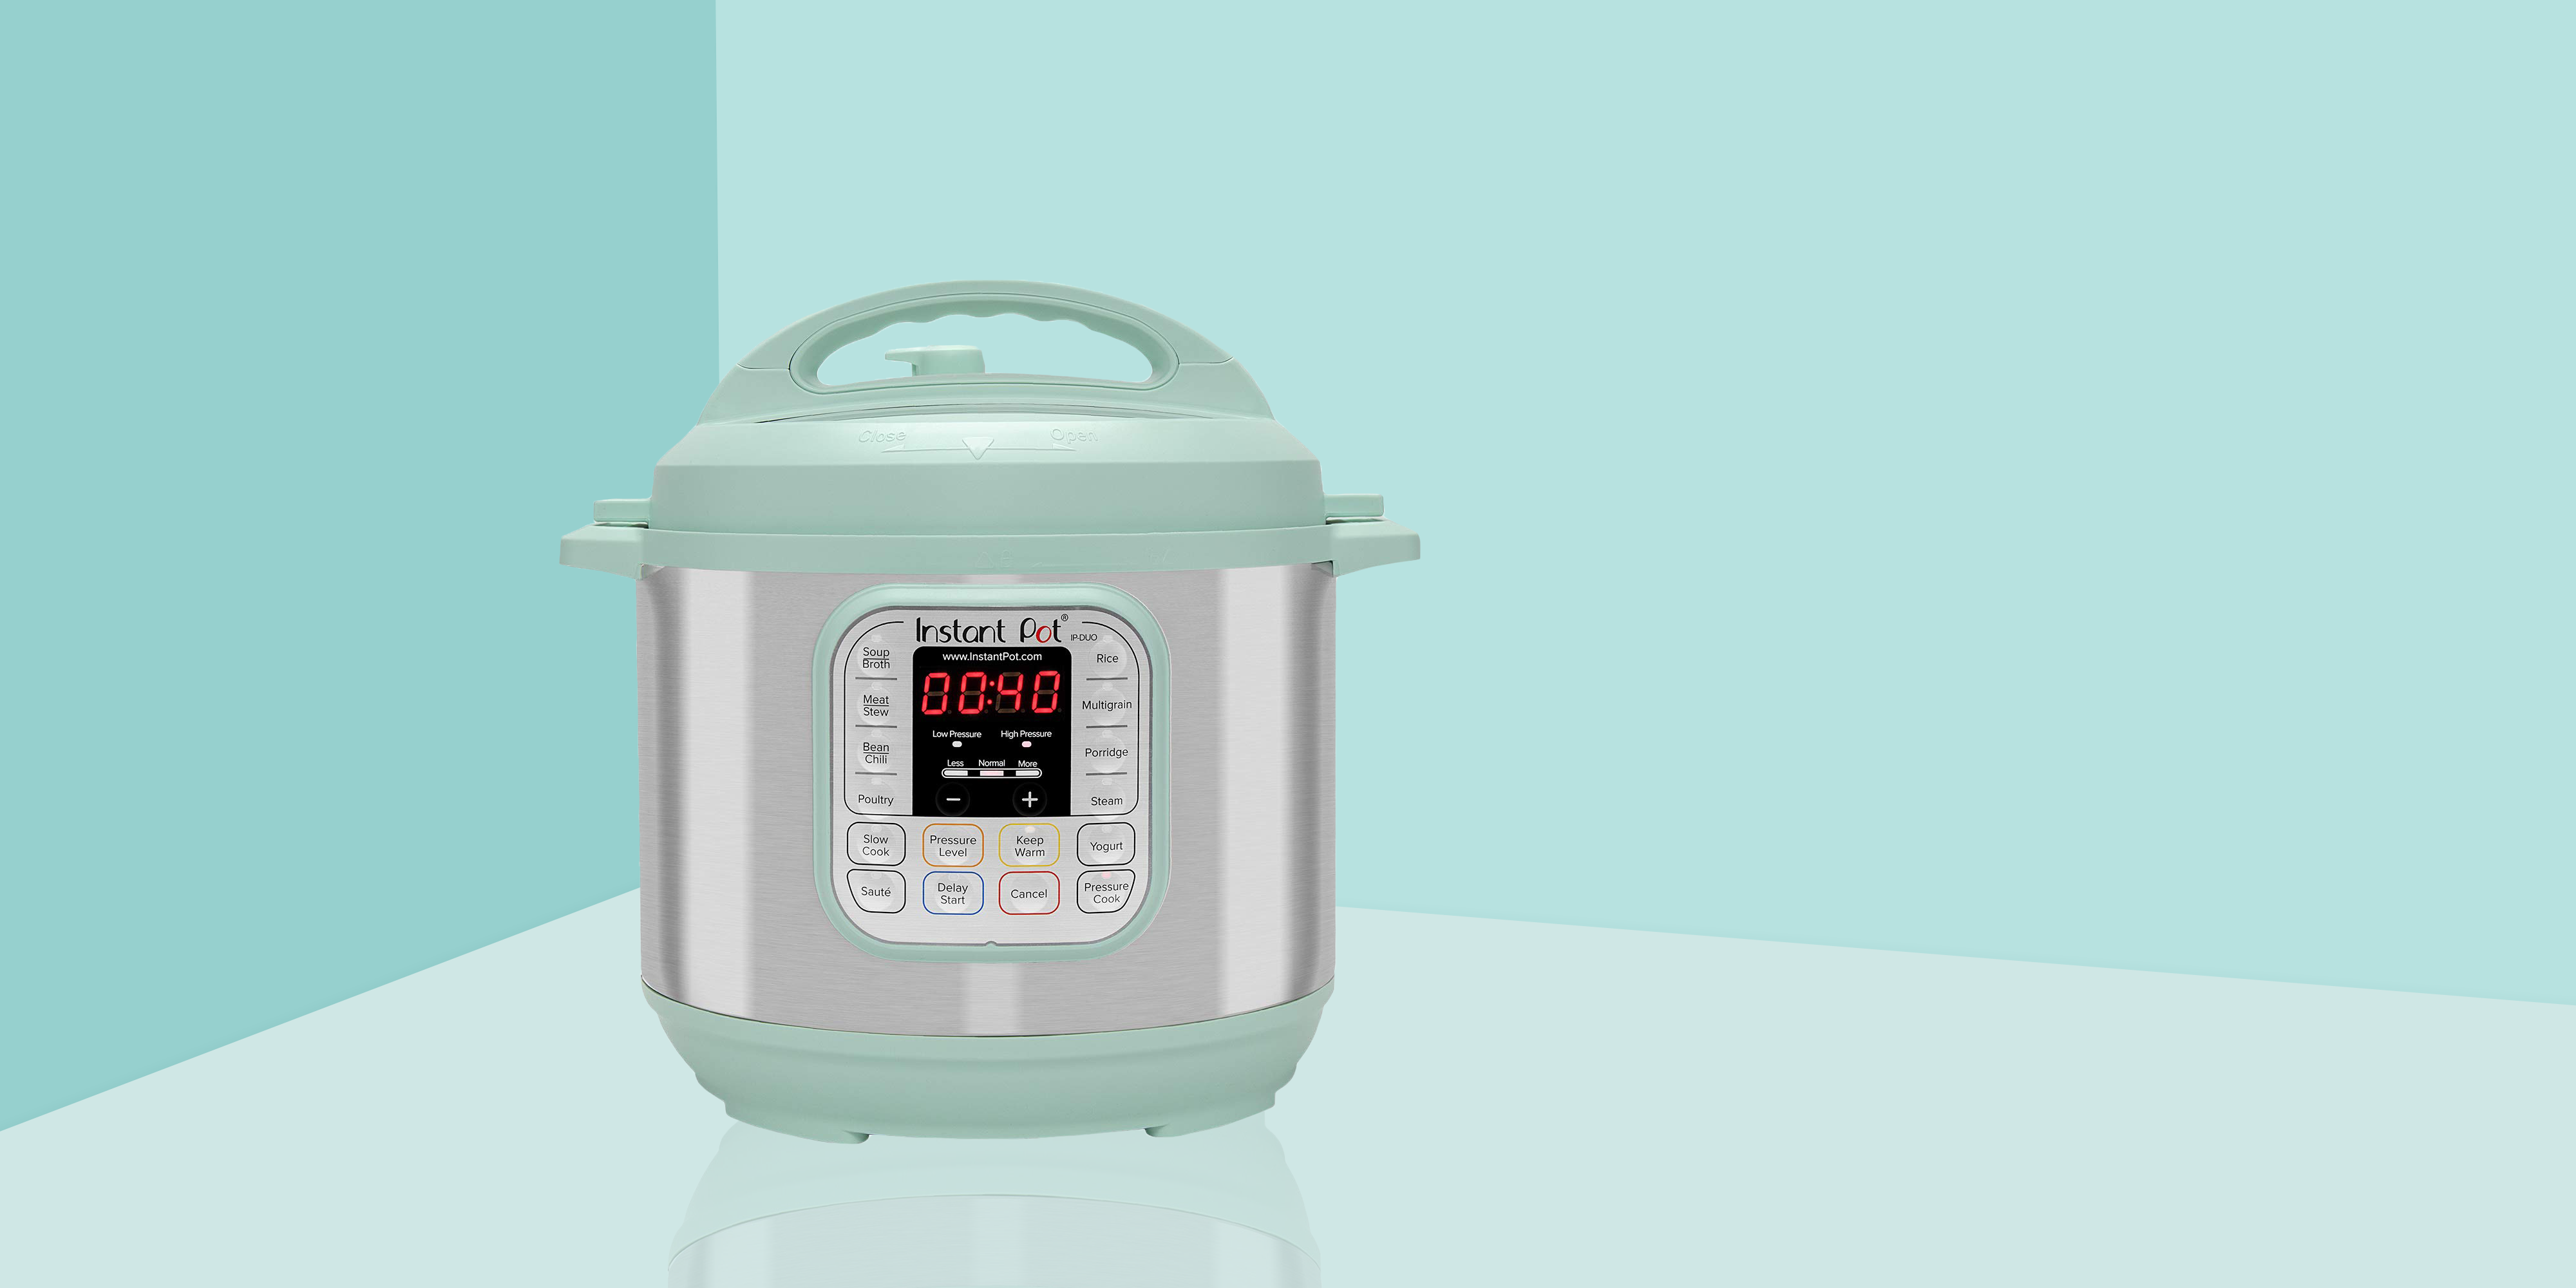 What Exactly Is an Instant Pot? Here's What You Need to Know